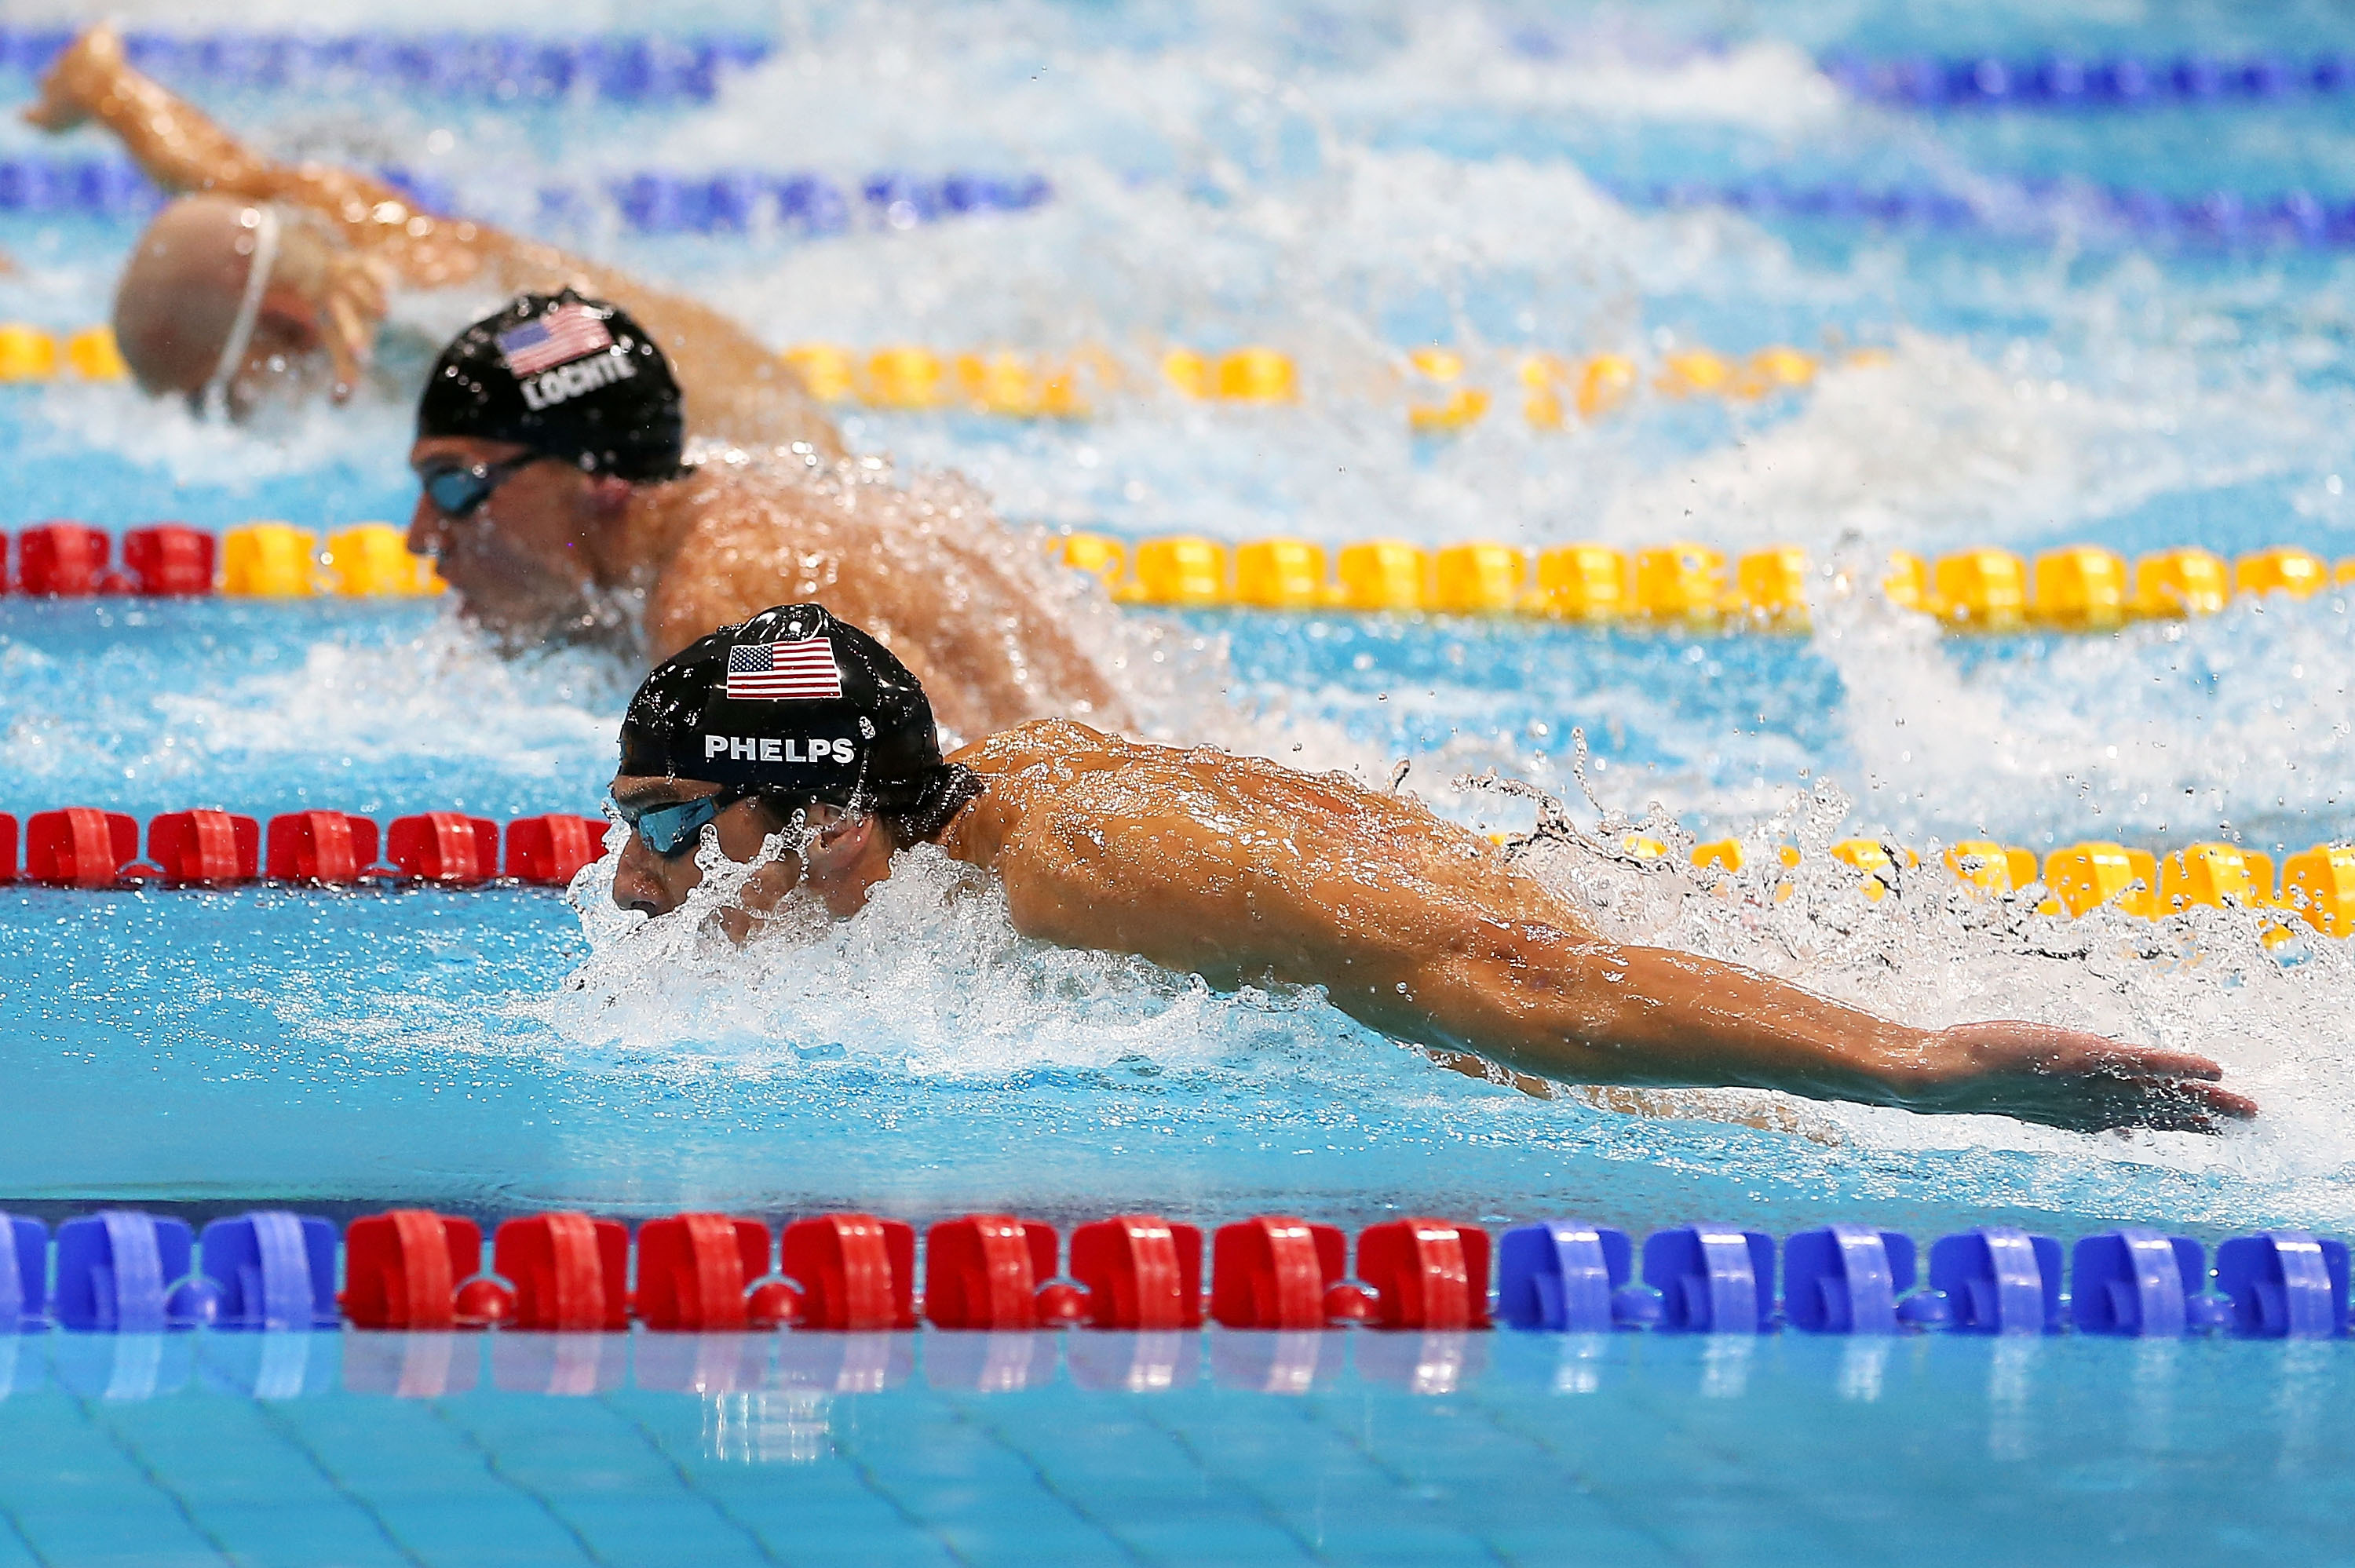 photos of day 6 from the london olympics knkx - Olympic Swimming Breaststroke